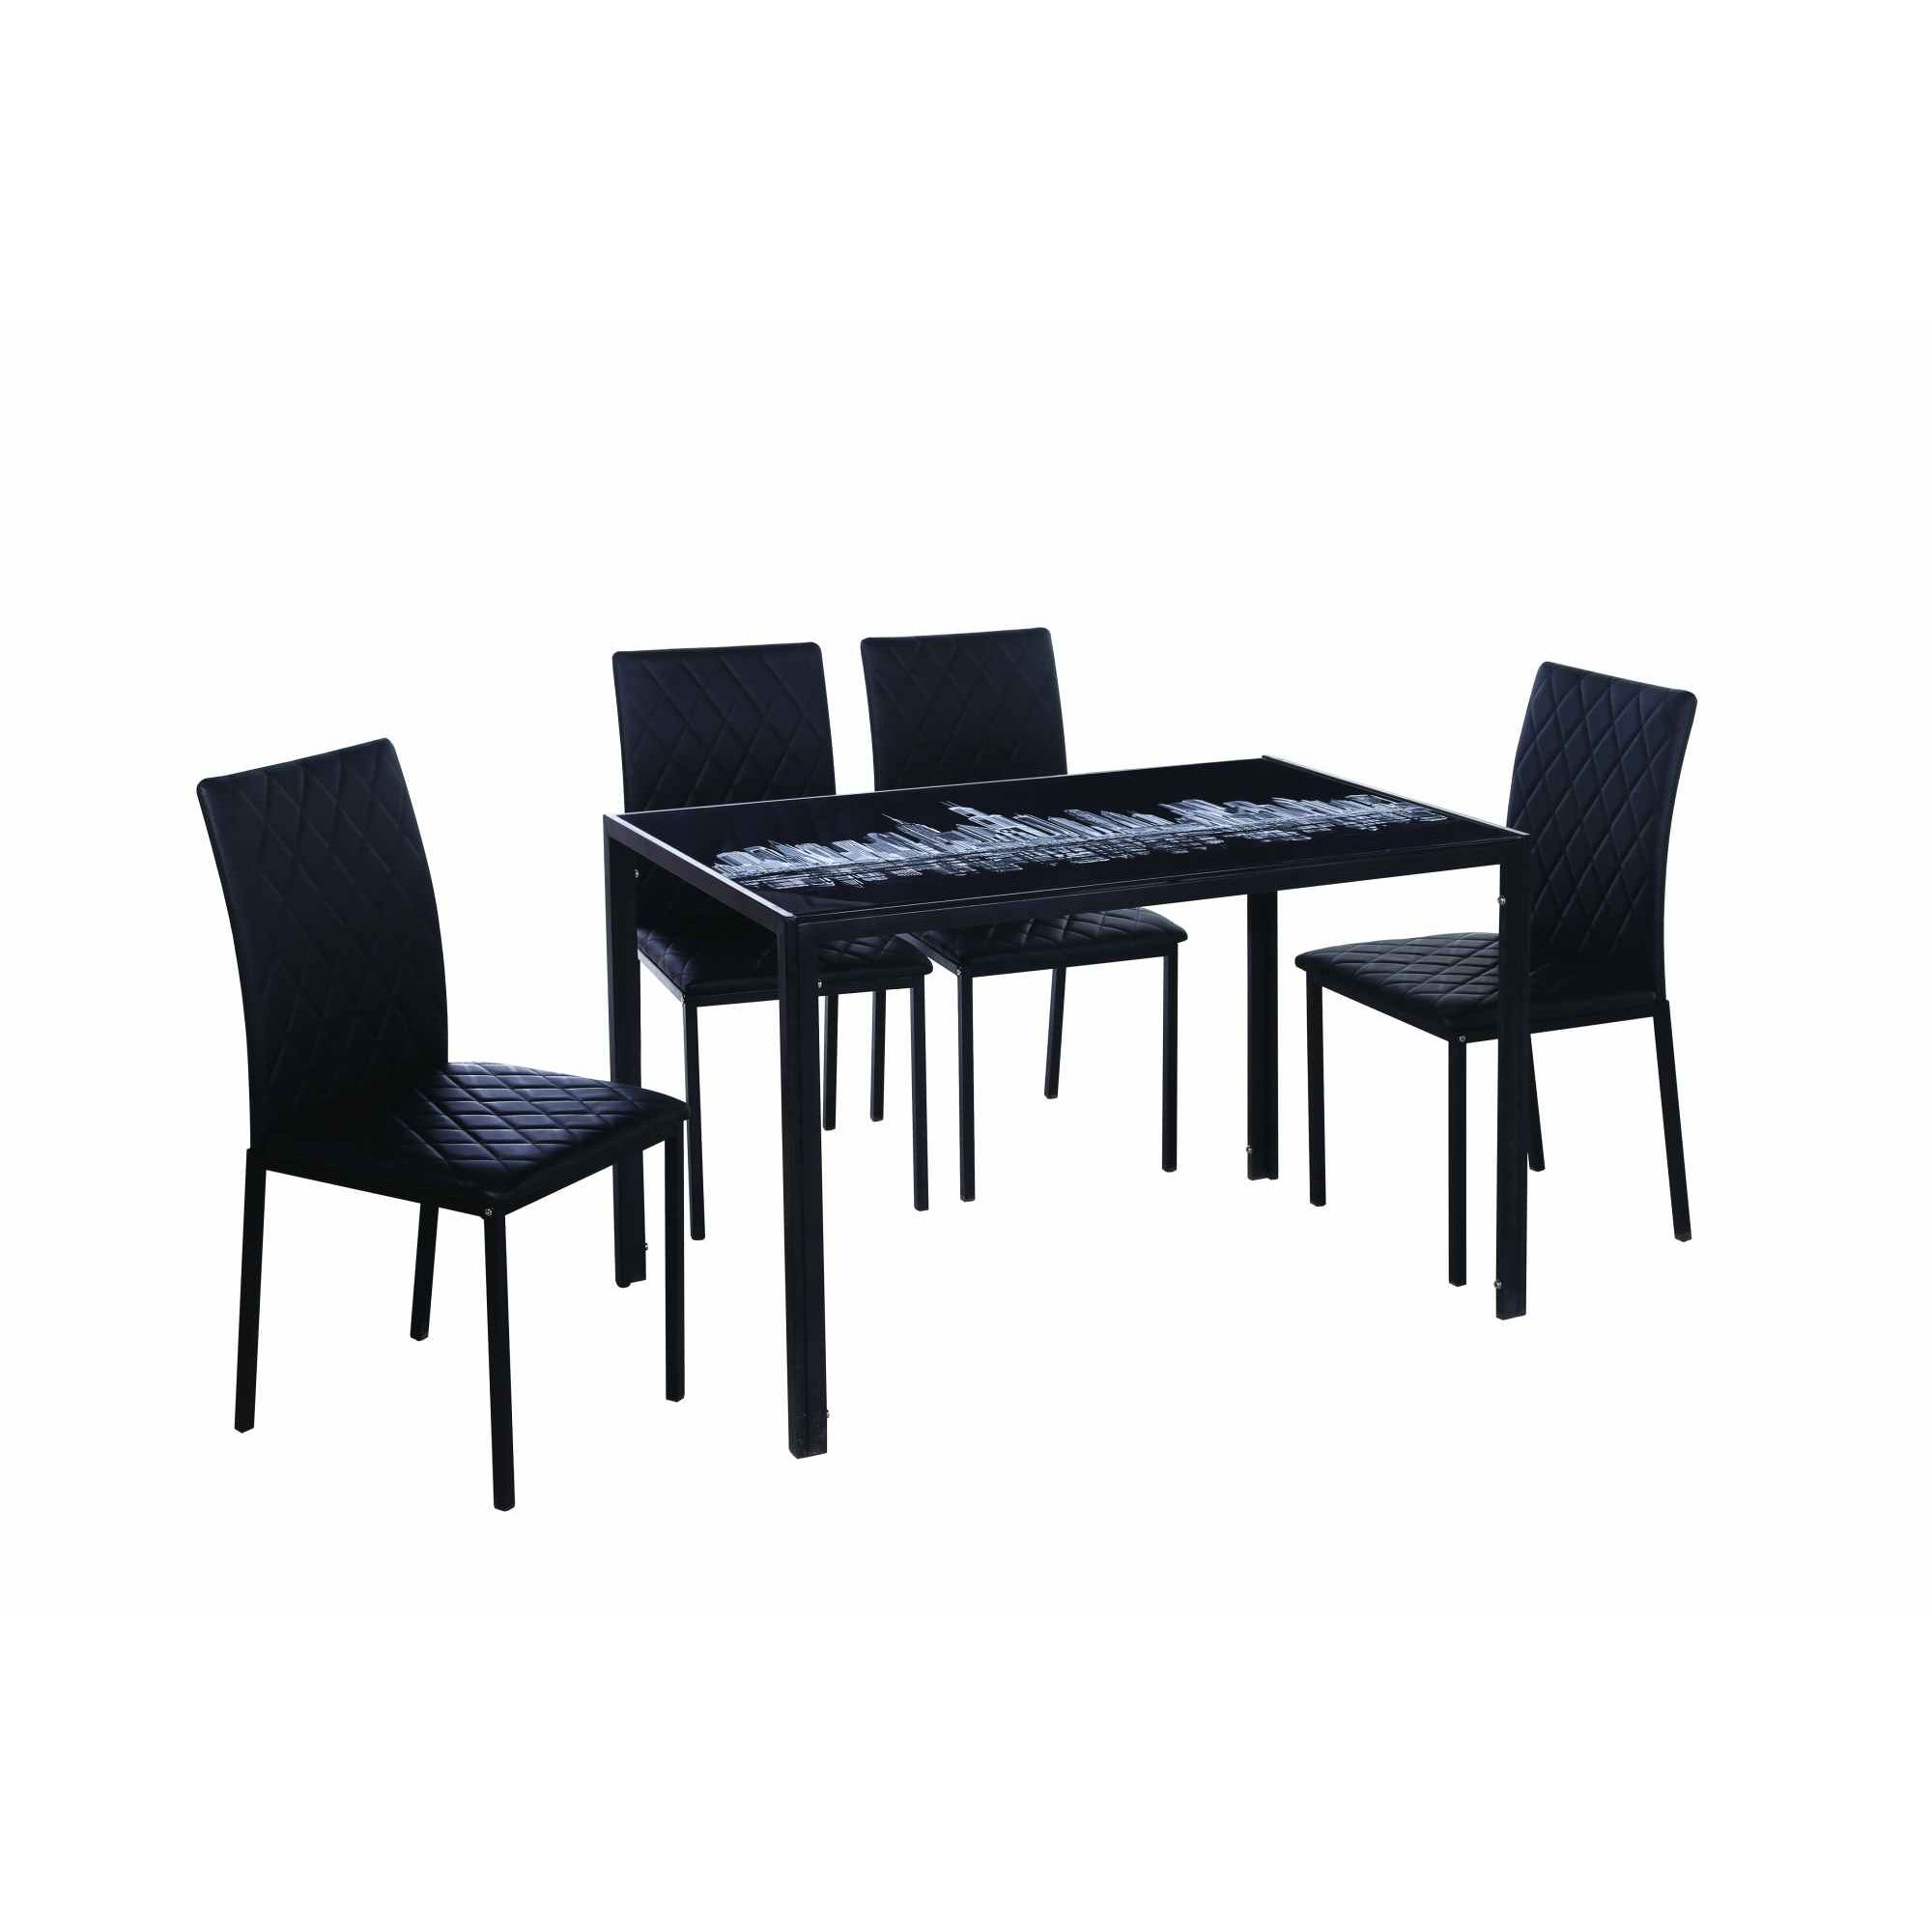 deco in paris 6 table a manger 4 chaises noir bulding table bulding 4chaise. Black Bedroom Furniture Sets. Home Design Ideas